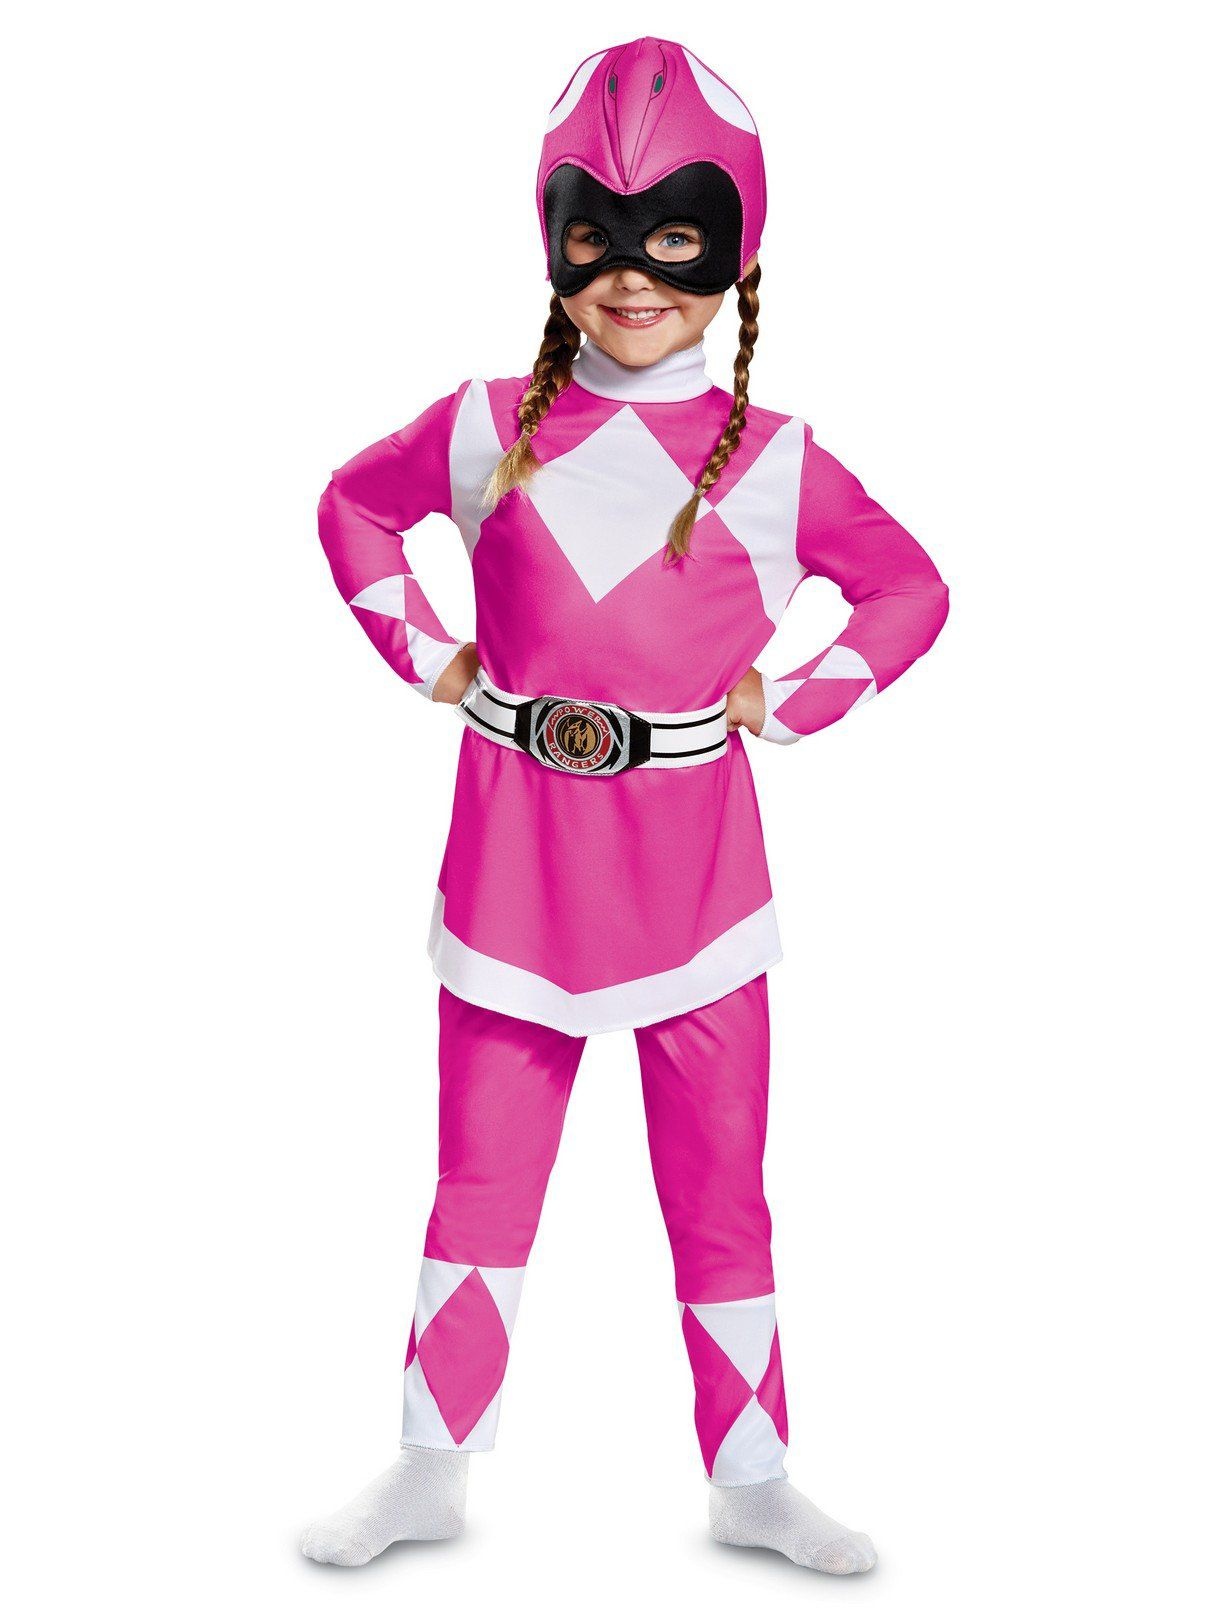 ... Toddler Mighty Morphin Pink Power Ranger Costume. View Larger Image. New Arrival  sc 1 st  BuyCostumes.com & Classic Toddler Mighty Morphin Pink Power Ranger Costume - Kids 2018 ...